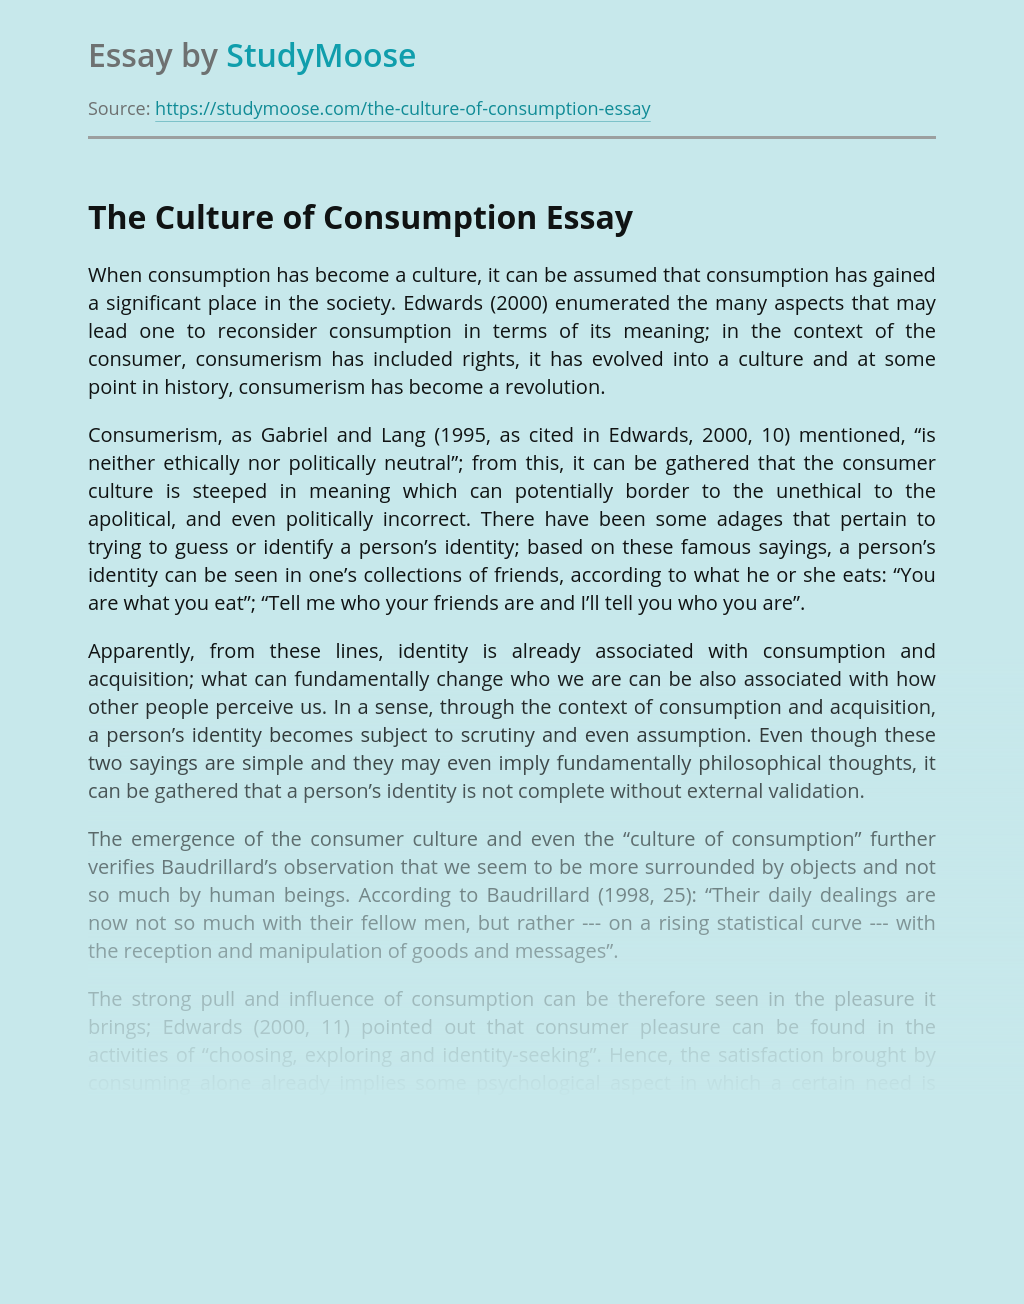 The Culture of Consumption